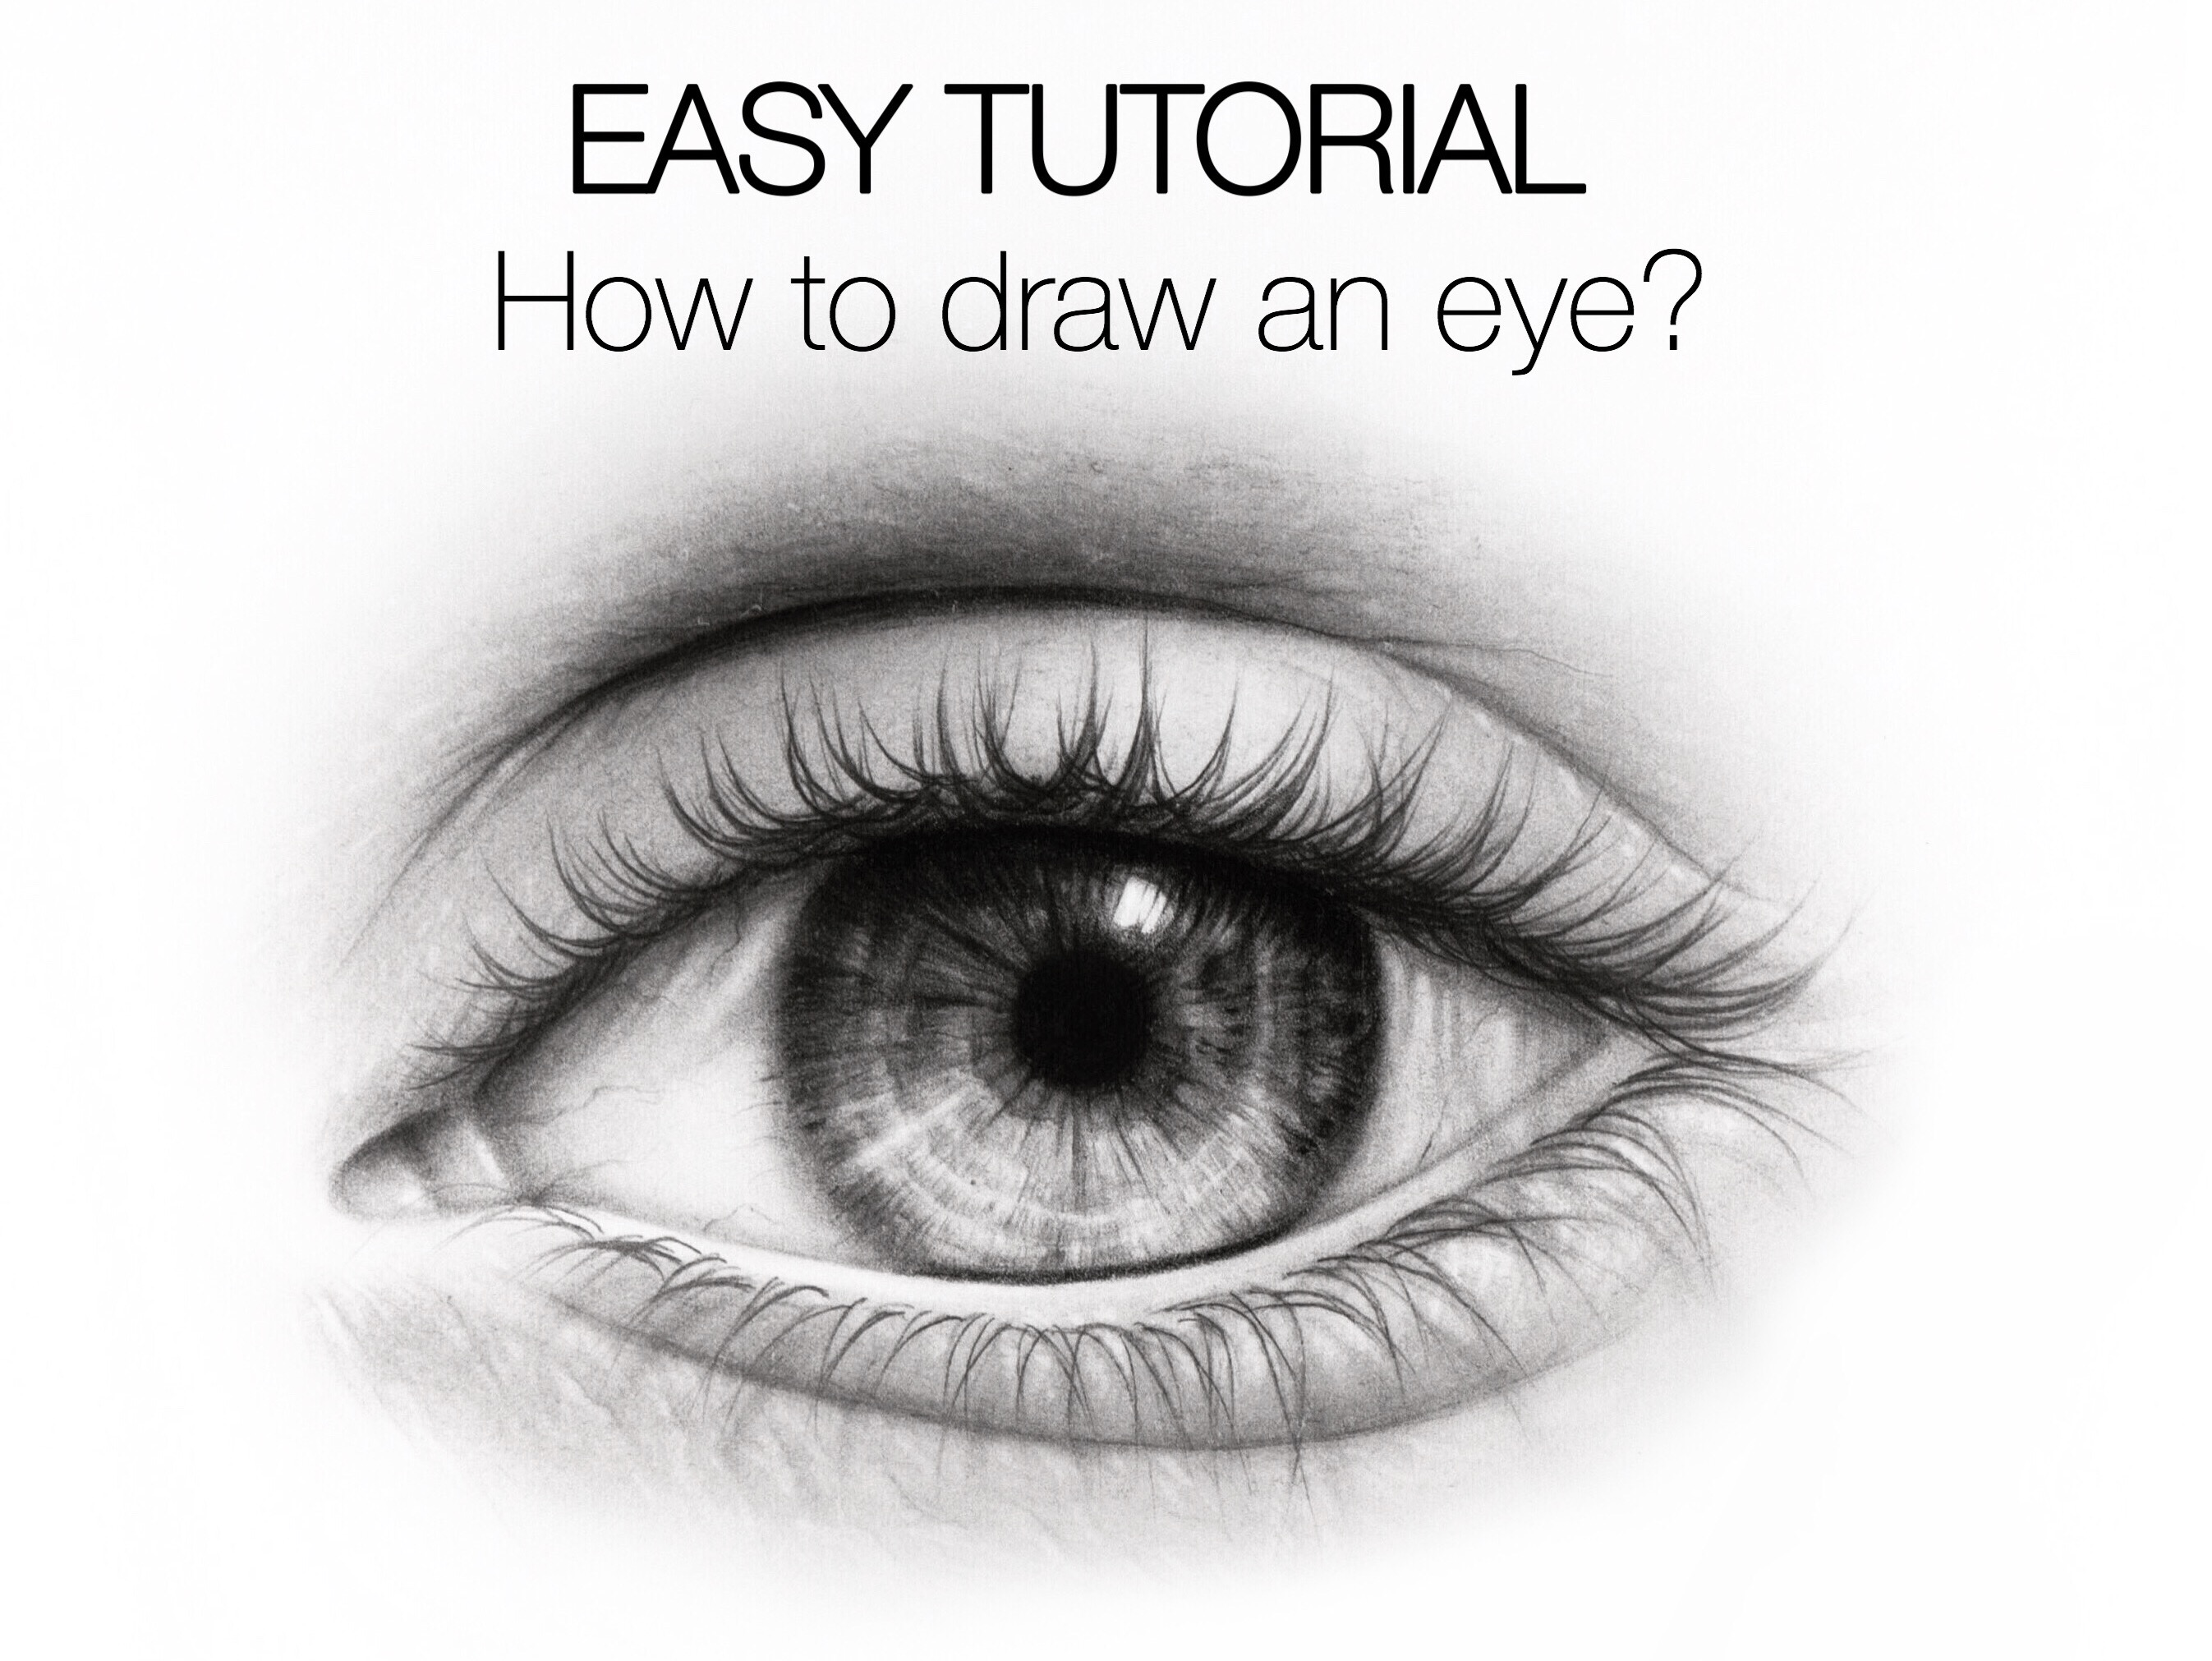 10 mar easy tutorial how to draw an eye